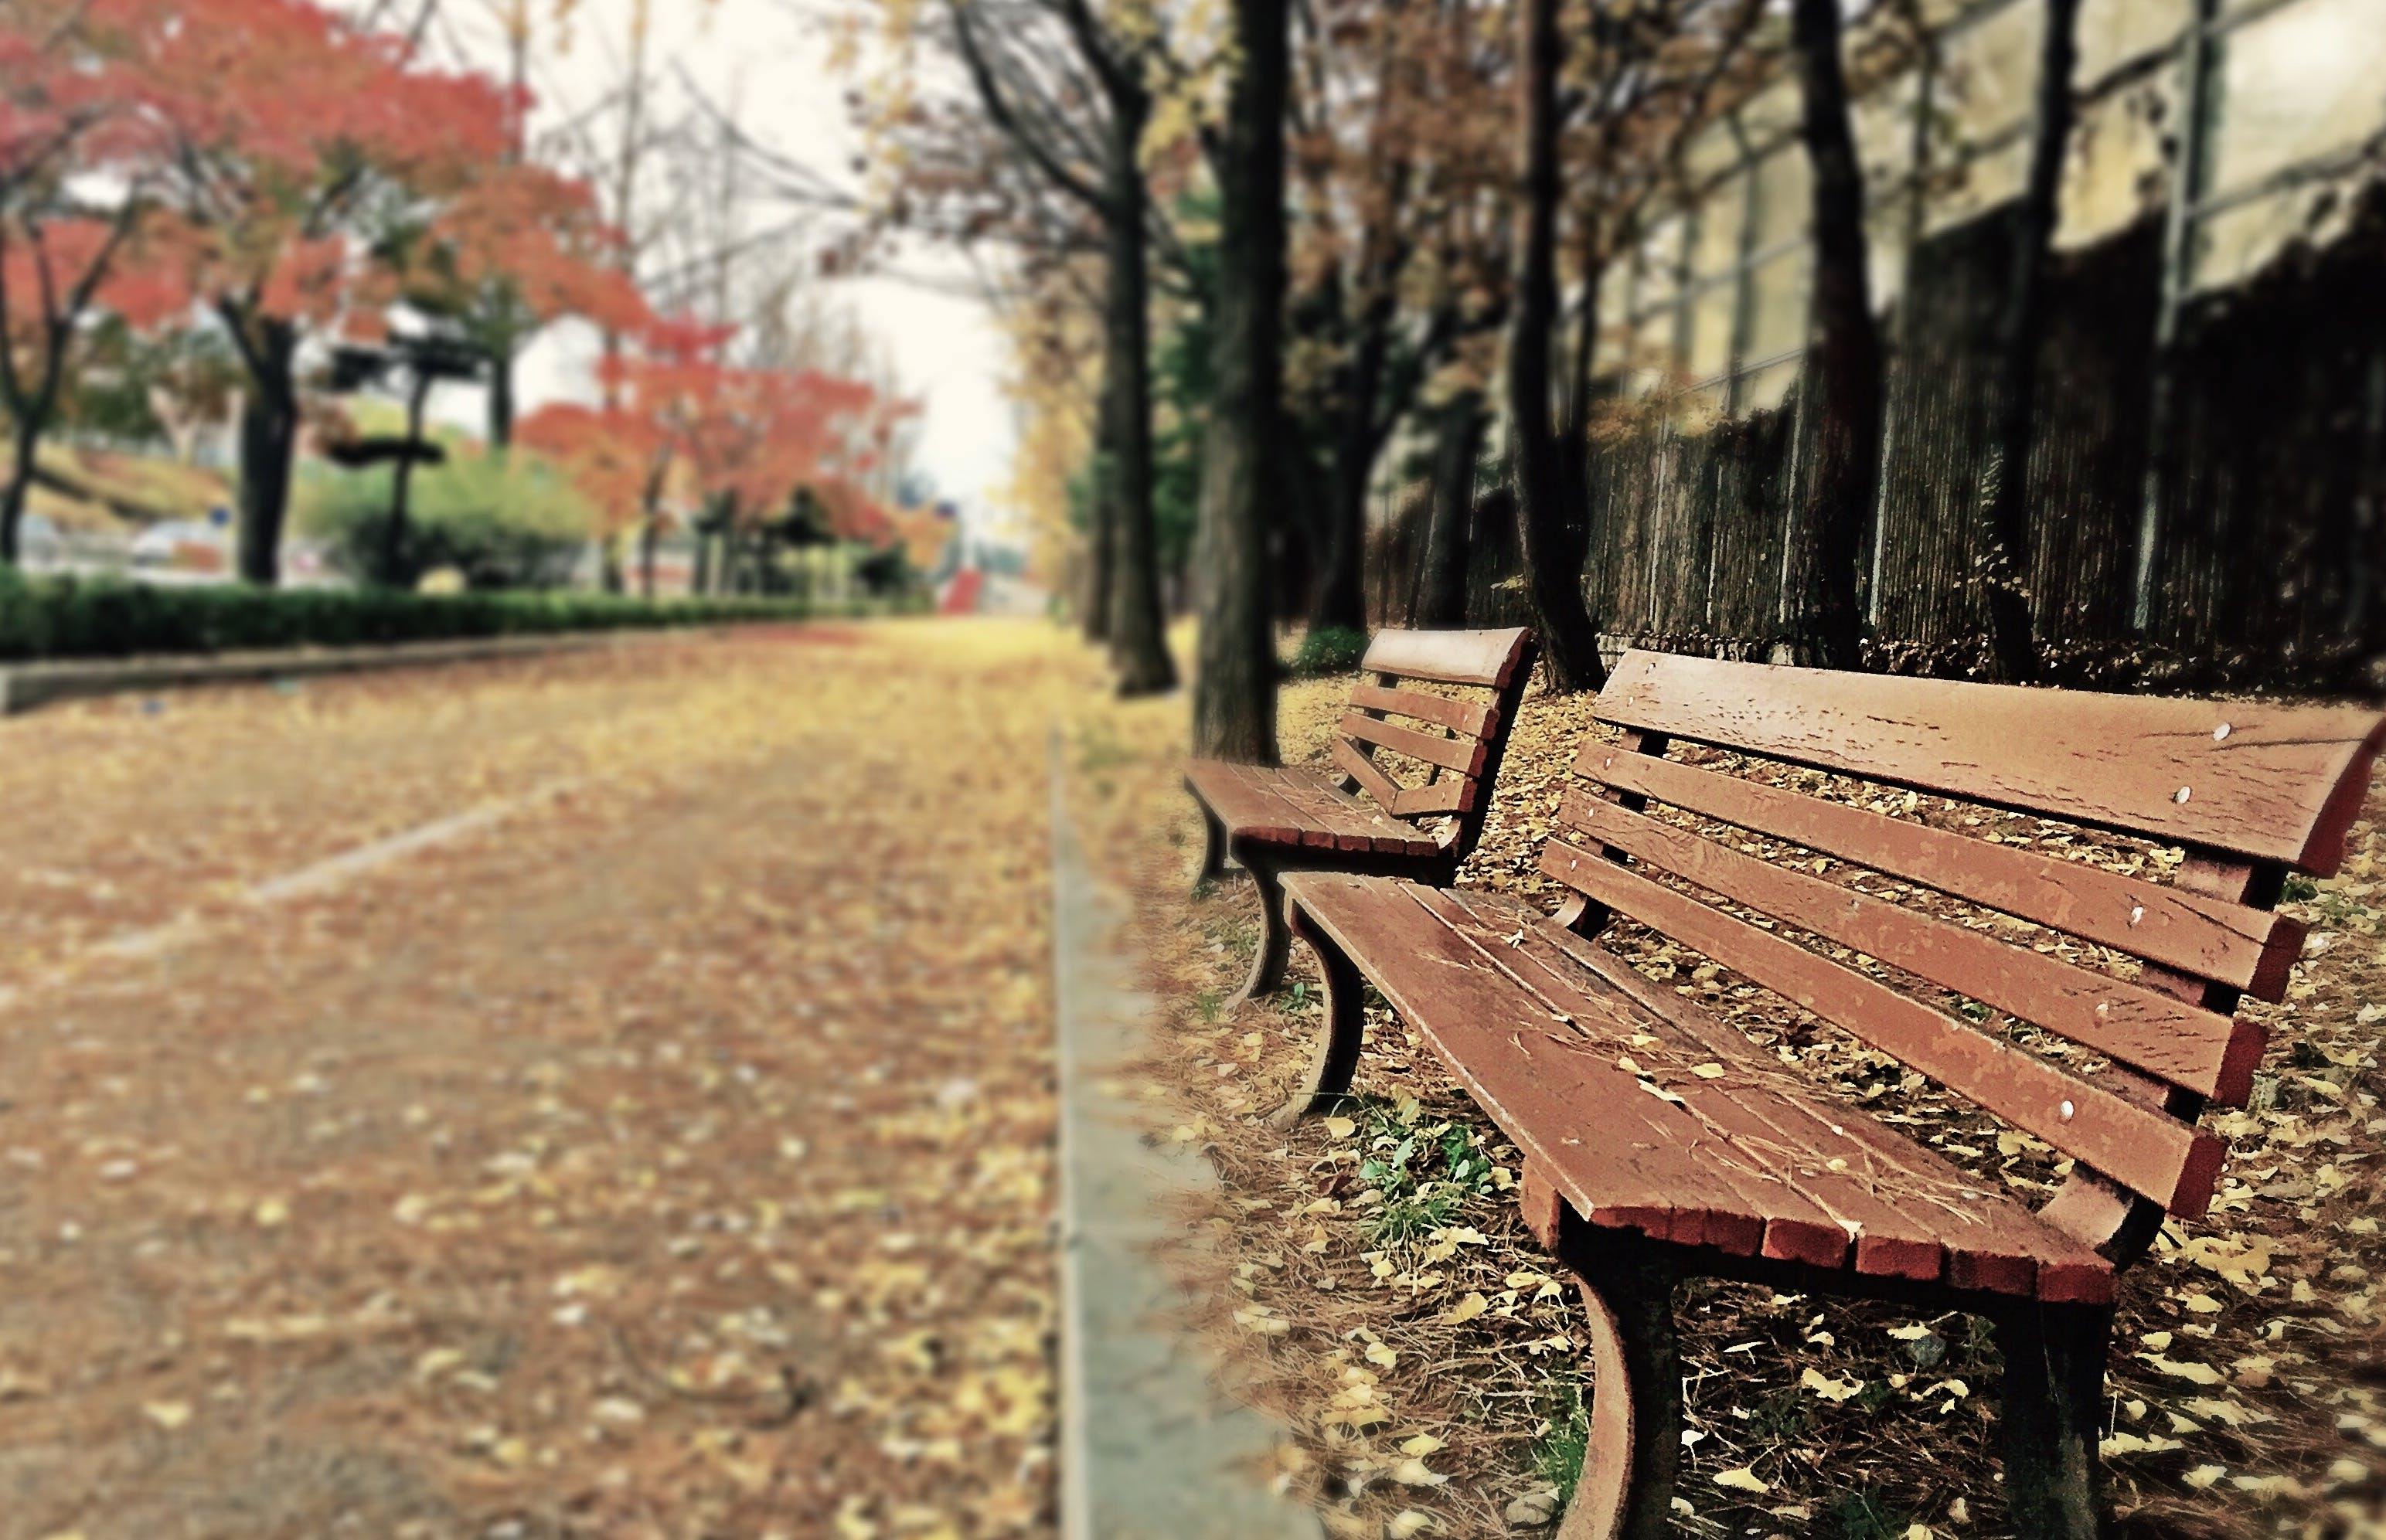 Brown Wooden Bench With Brown Dried Leaves